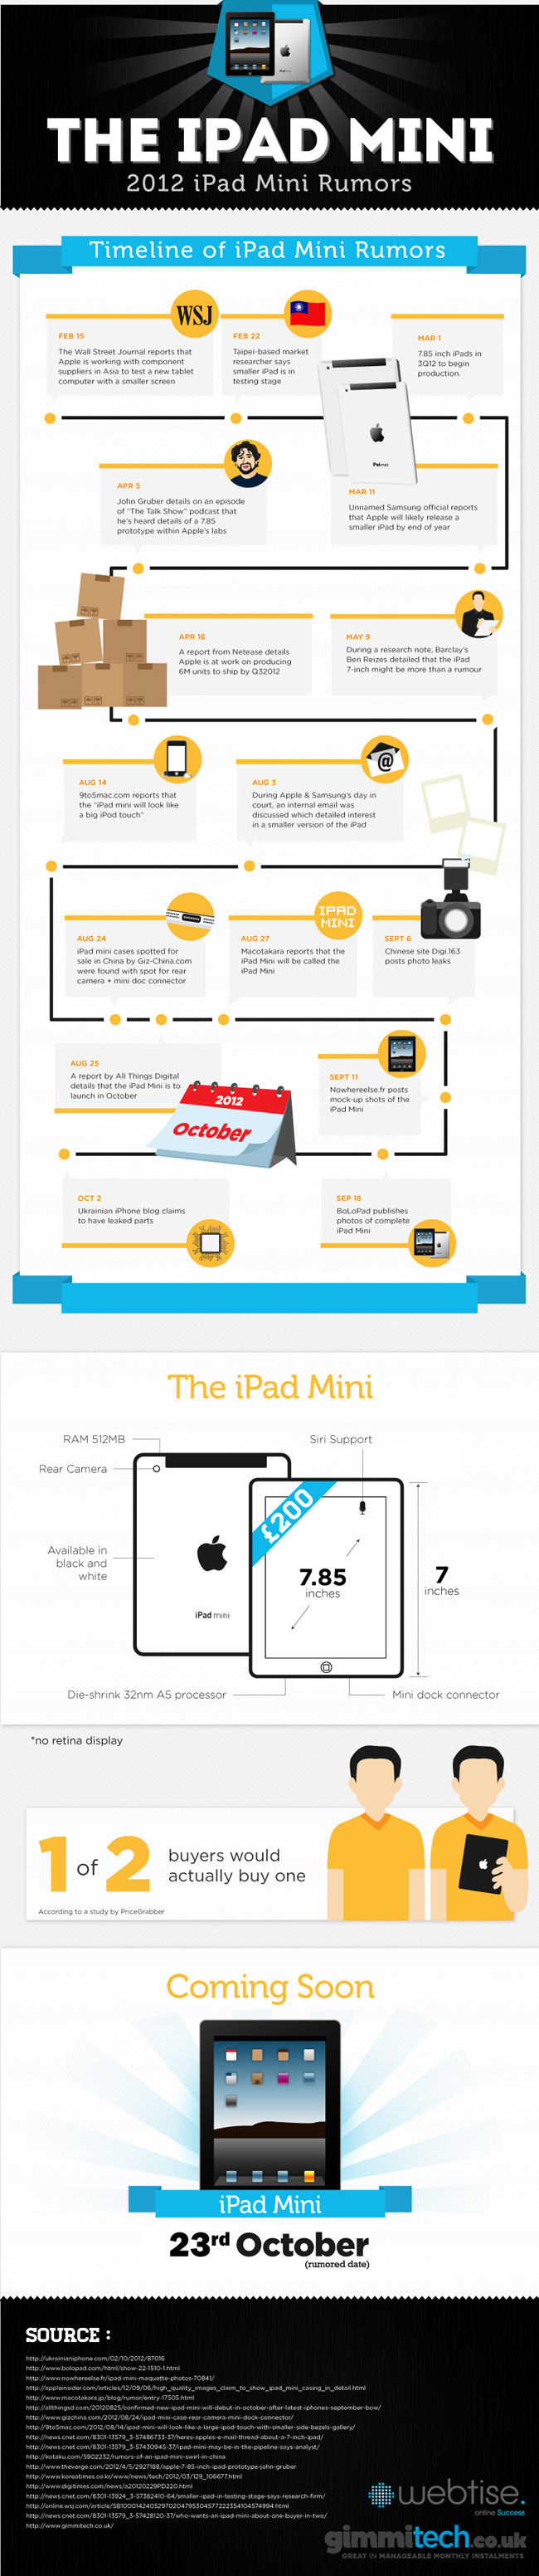 ipad mini infographic